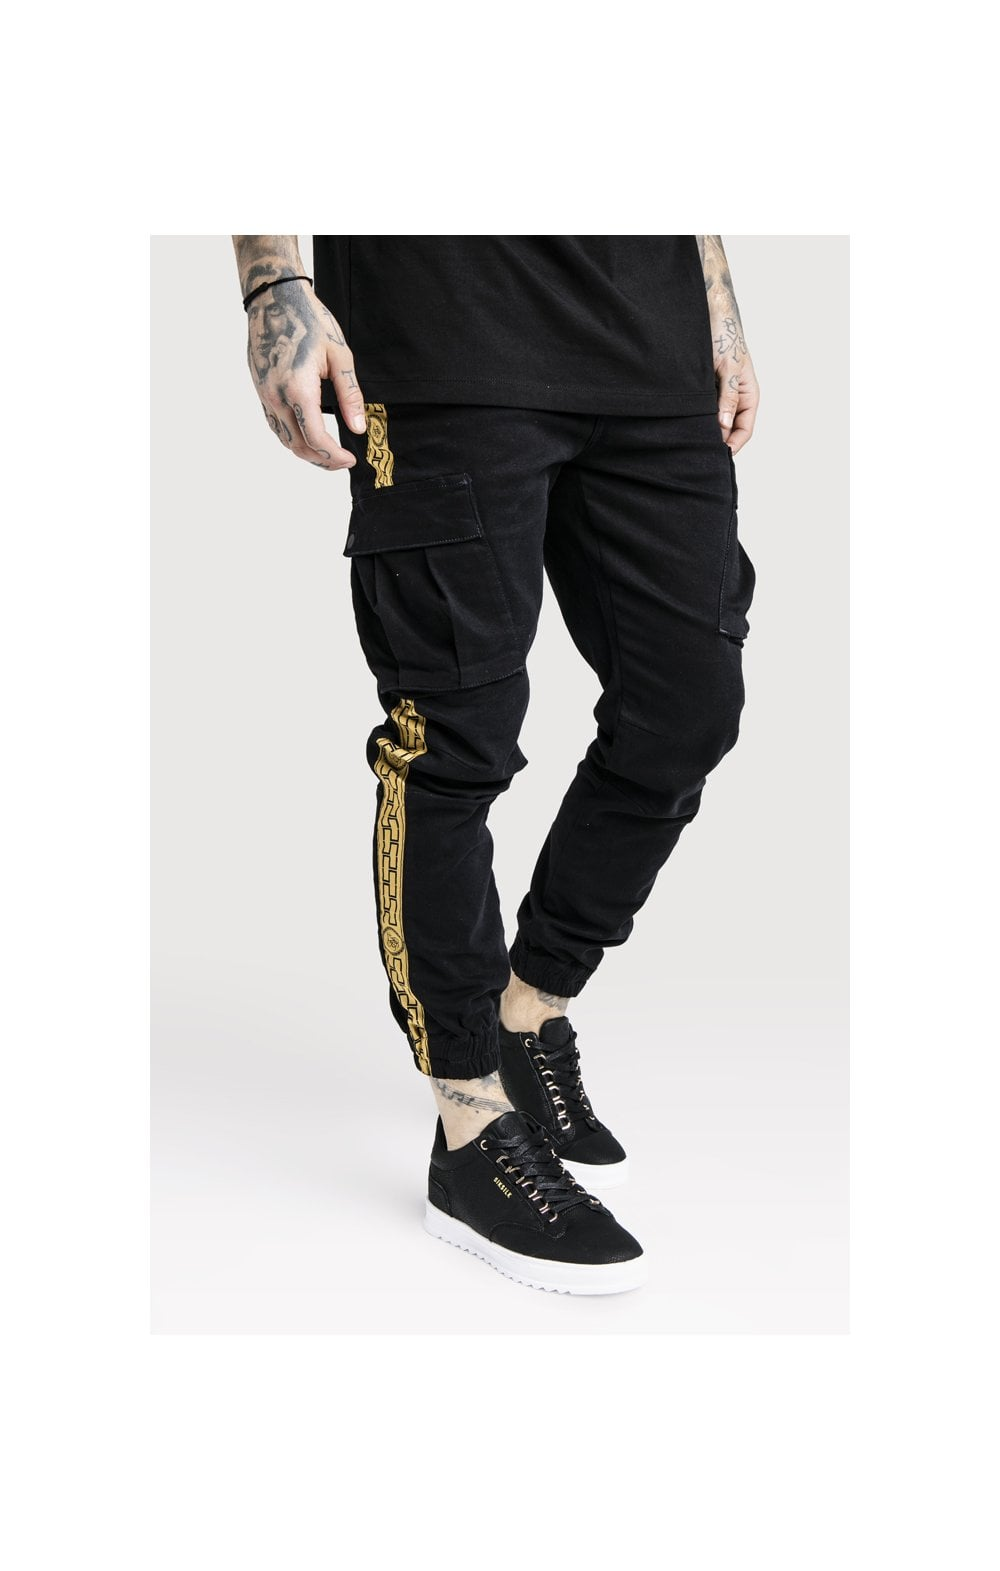 Load image into Gallery viewer, SikSilk x Dani Alves Cargo Pants - Black (1)